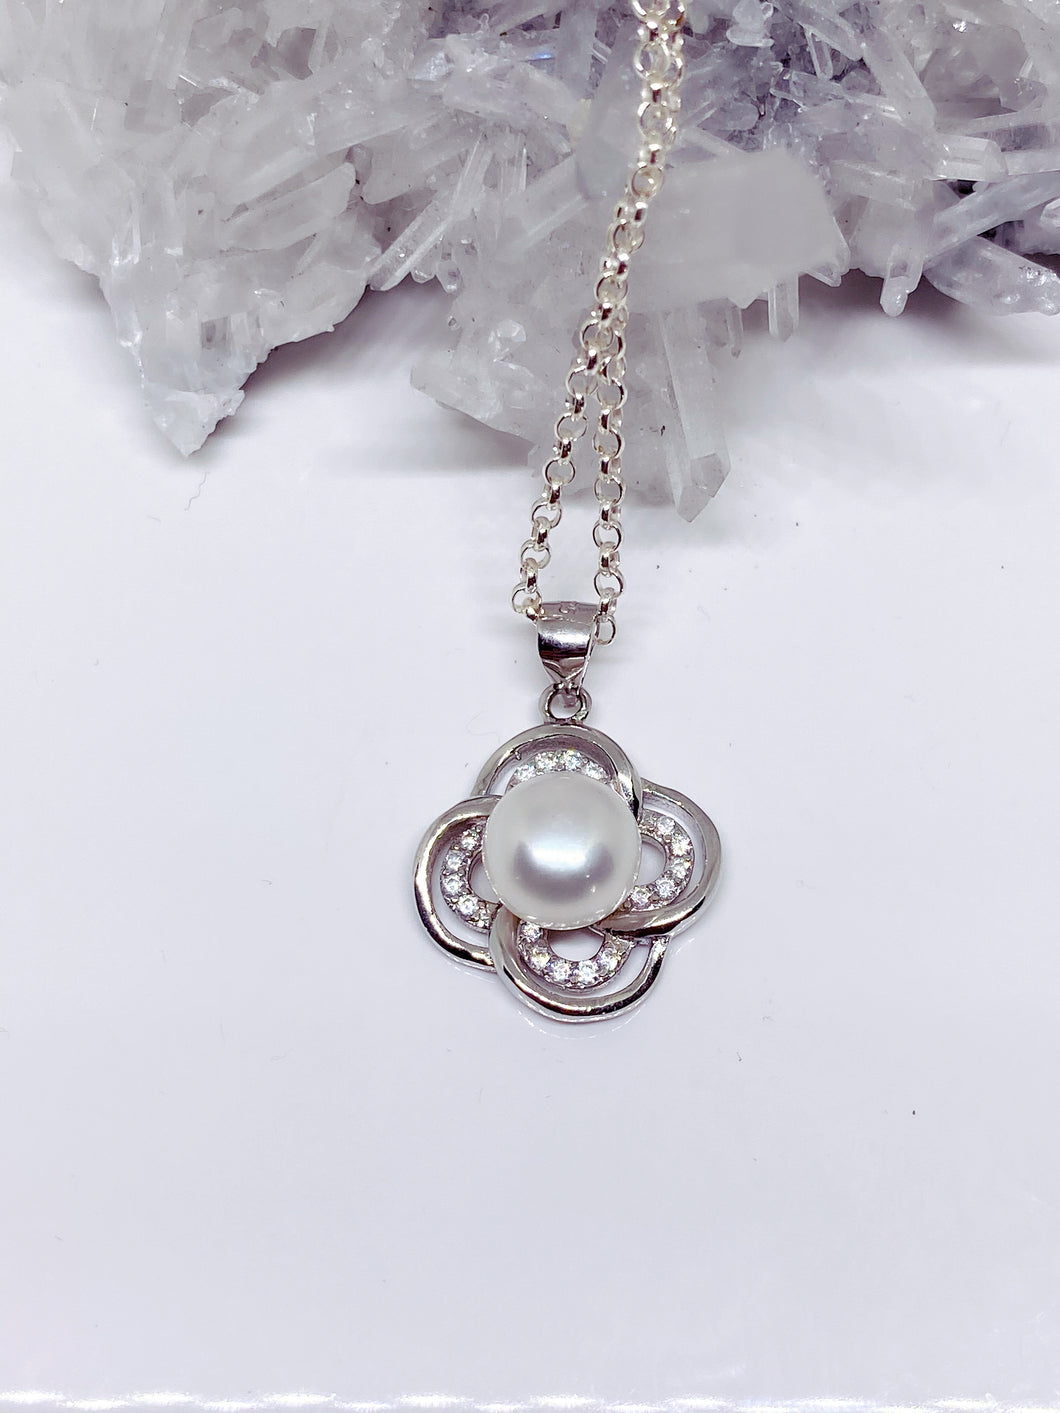 Freshwater Button Pearl & Cubic Zirconia Pendant - Sterling Silver with Chain